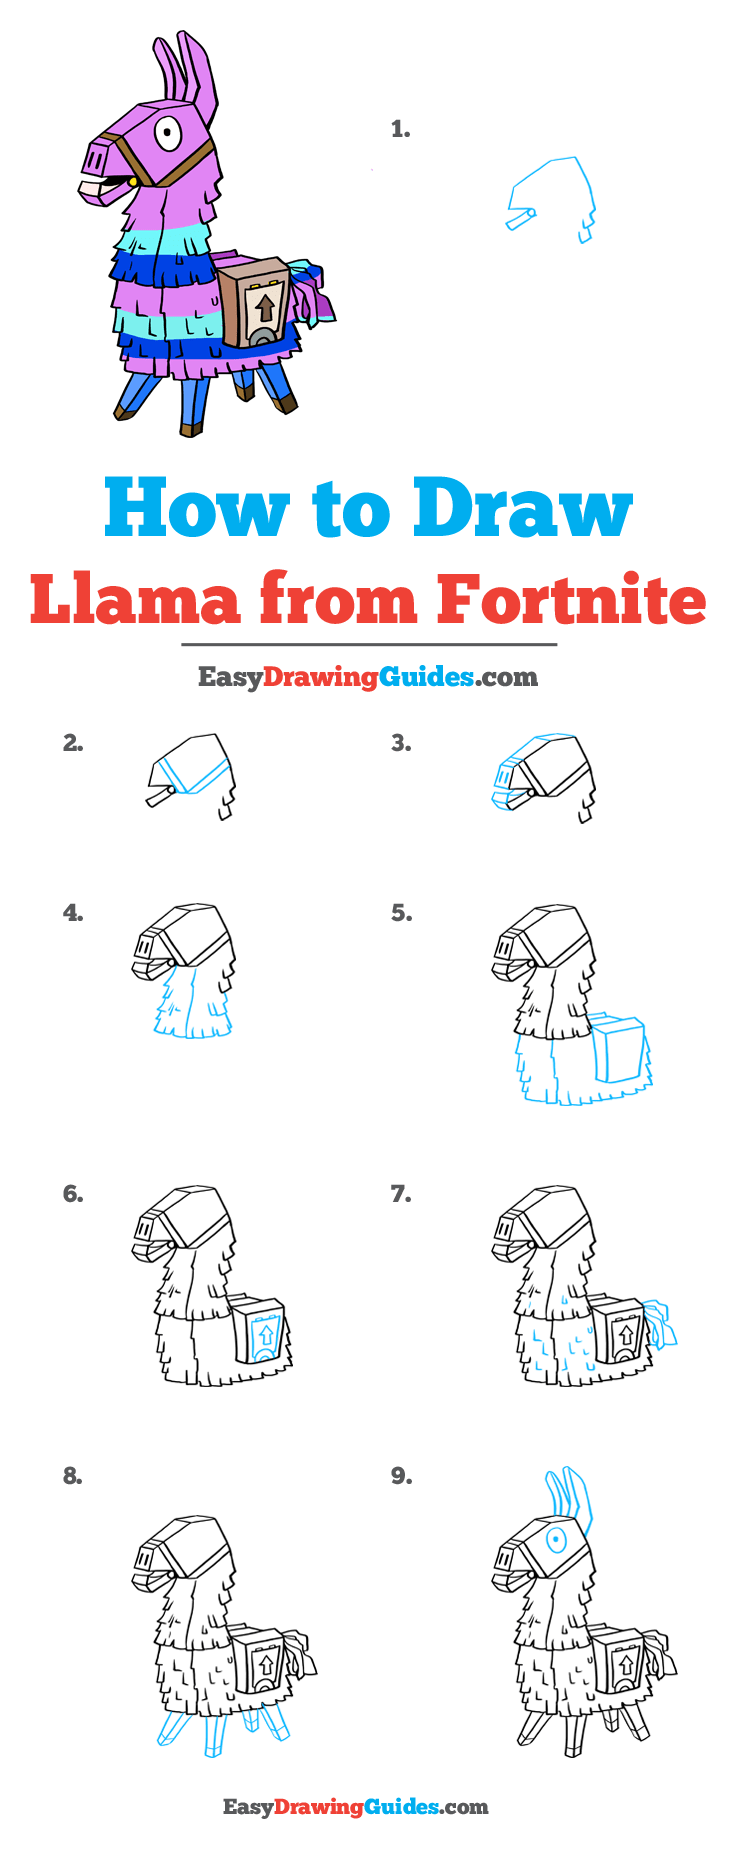 How to Draw Llama from Fortnite